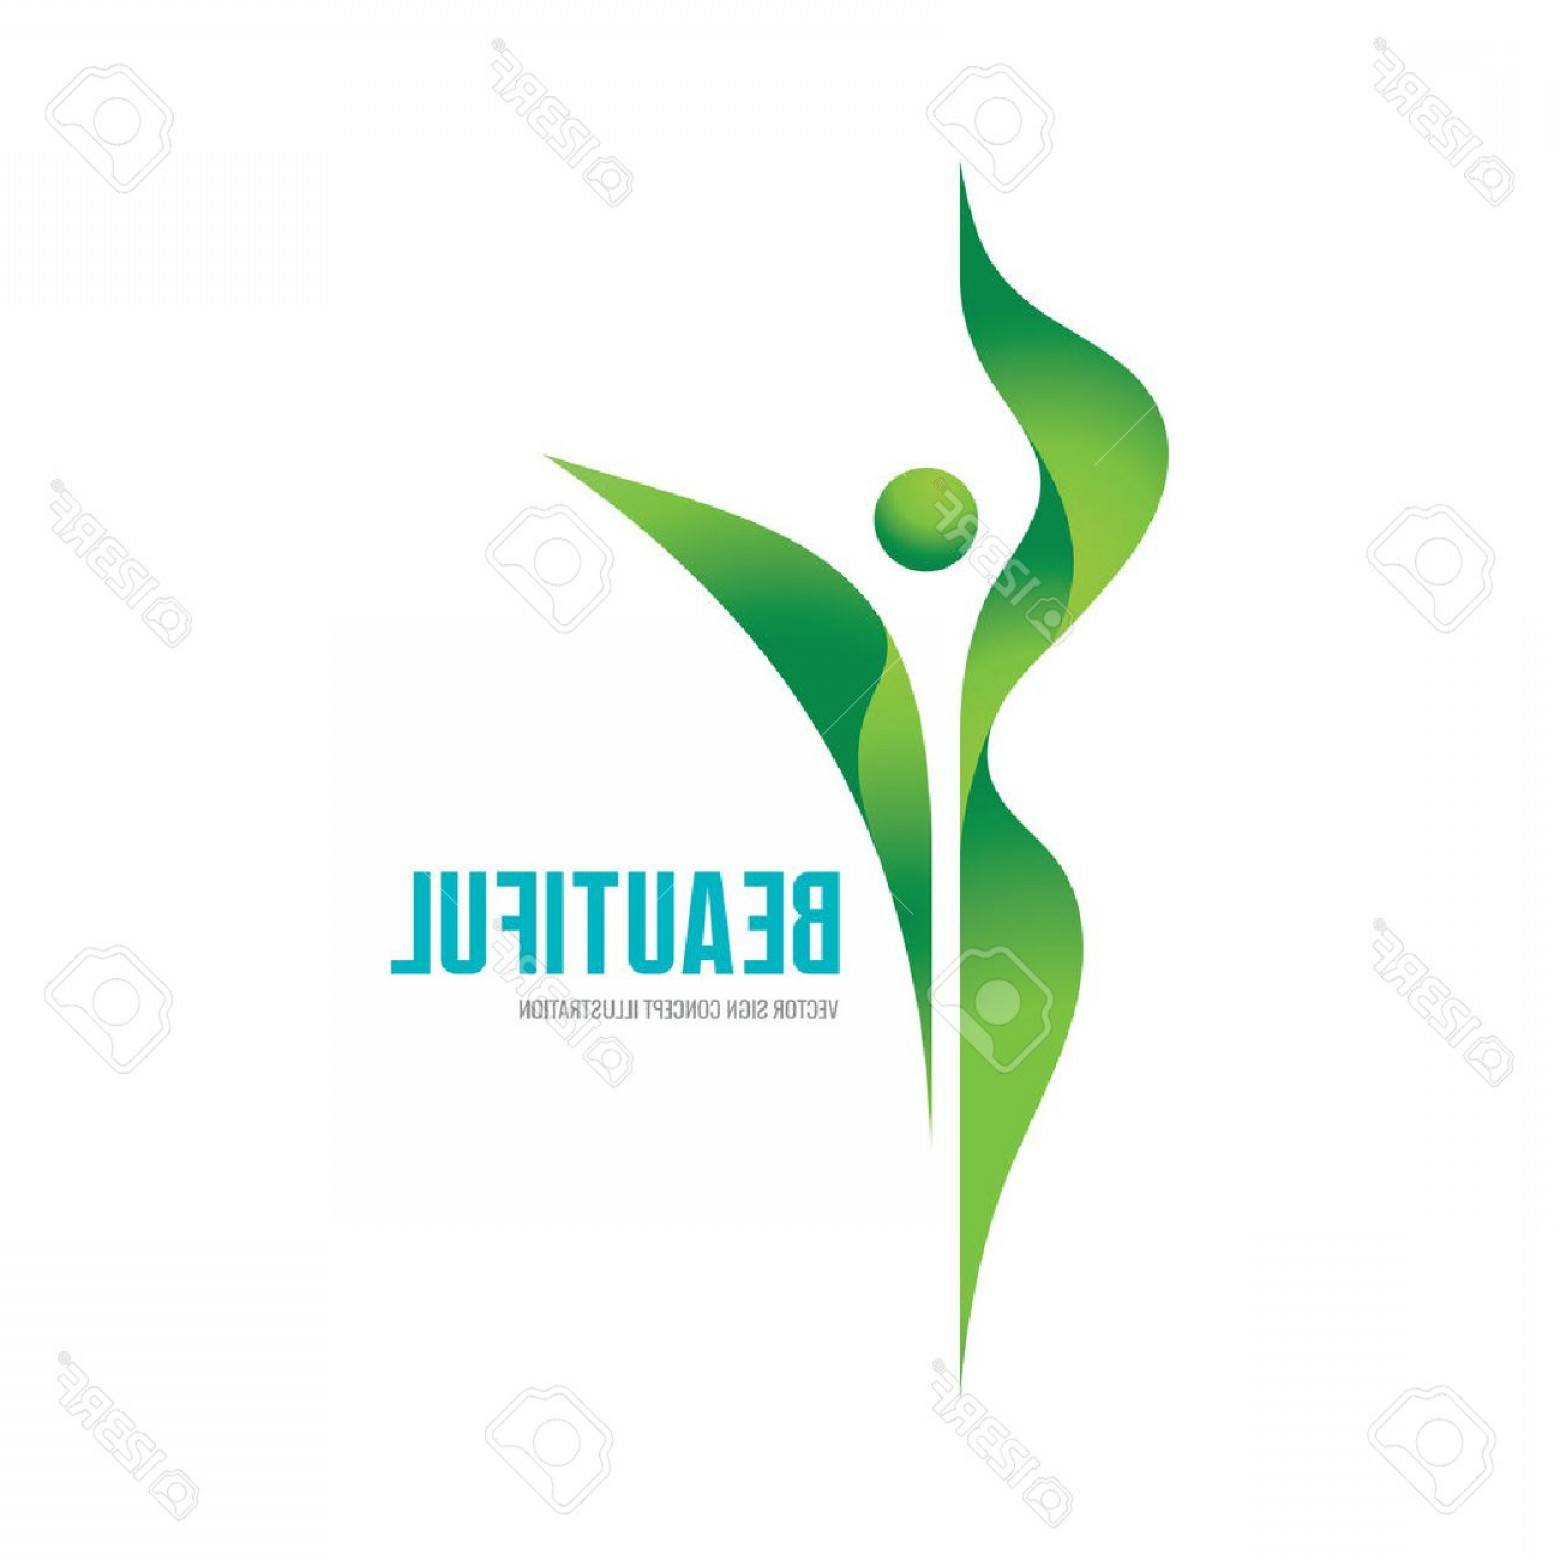 Health Vector Logo: Photostock Vector Beatiful Vector Logo Concept Illustration Health Logo Healthy Logo Beauty Salon Logo Fitness Logo Wo